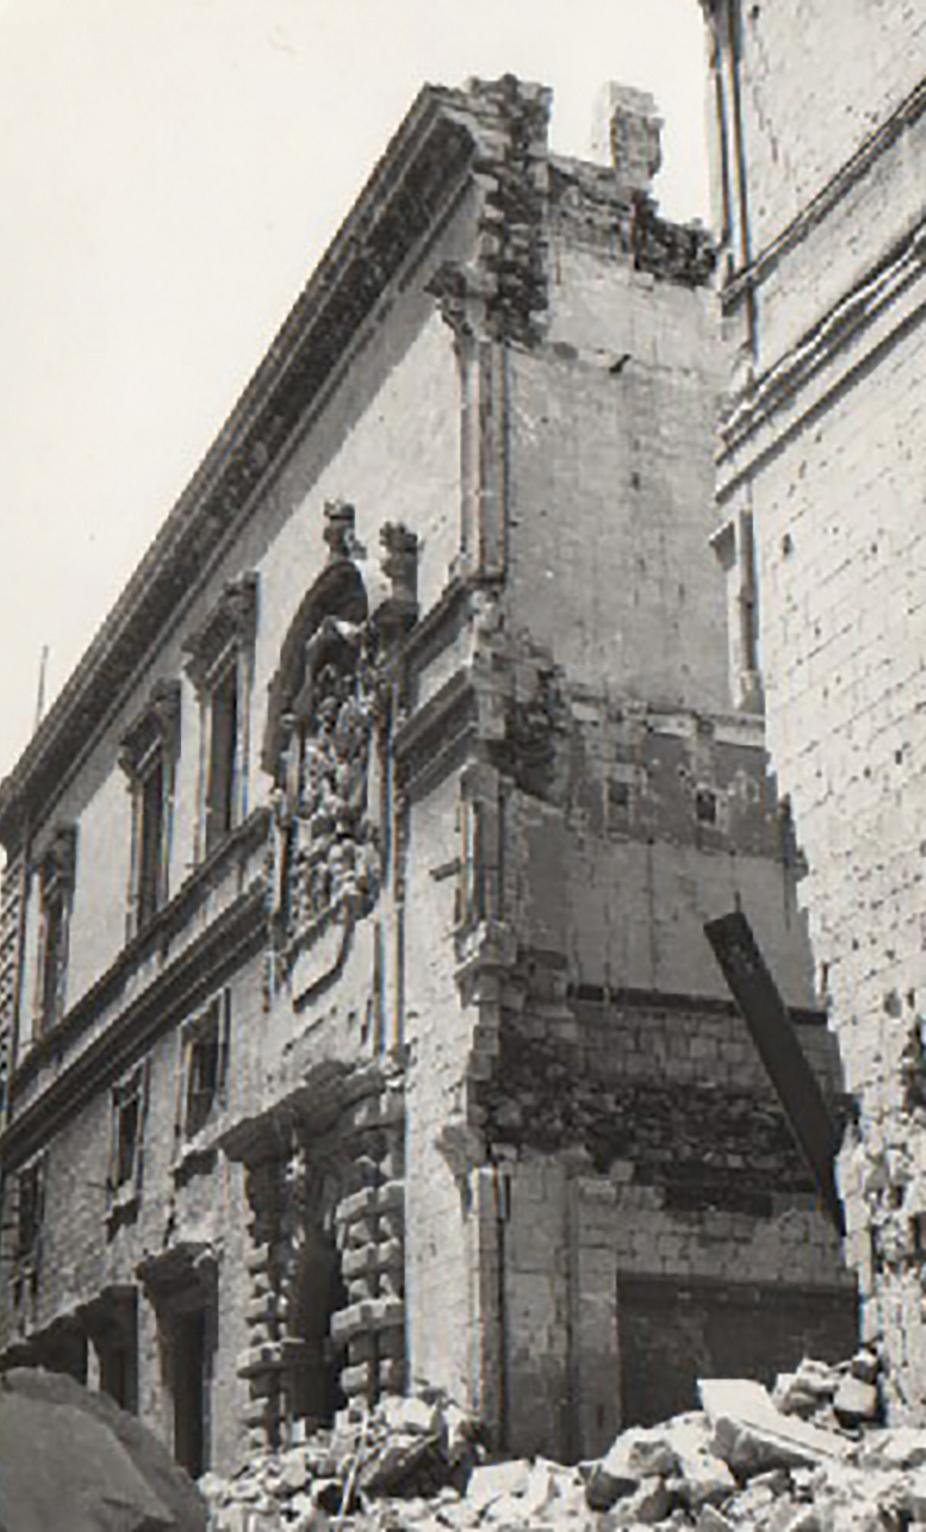 Half of the historic Auberge d'Italie in Merchants Street, Valletta, was demolished by bombing. It was rebuilt after the war and now serves as the arts museum.